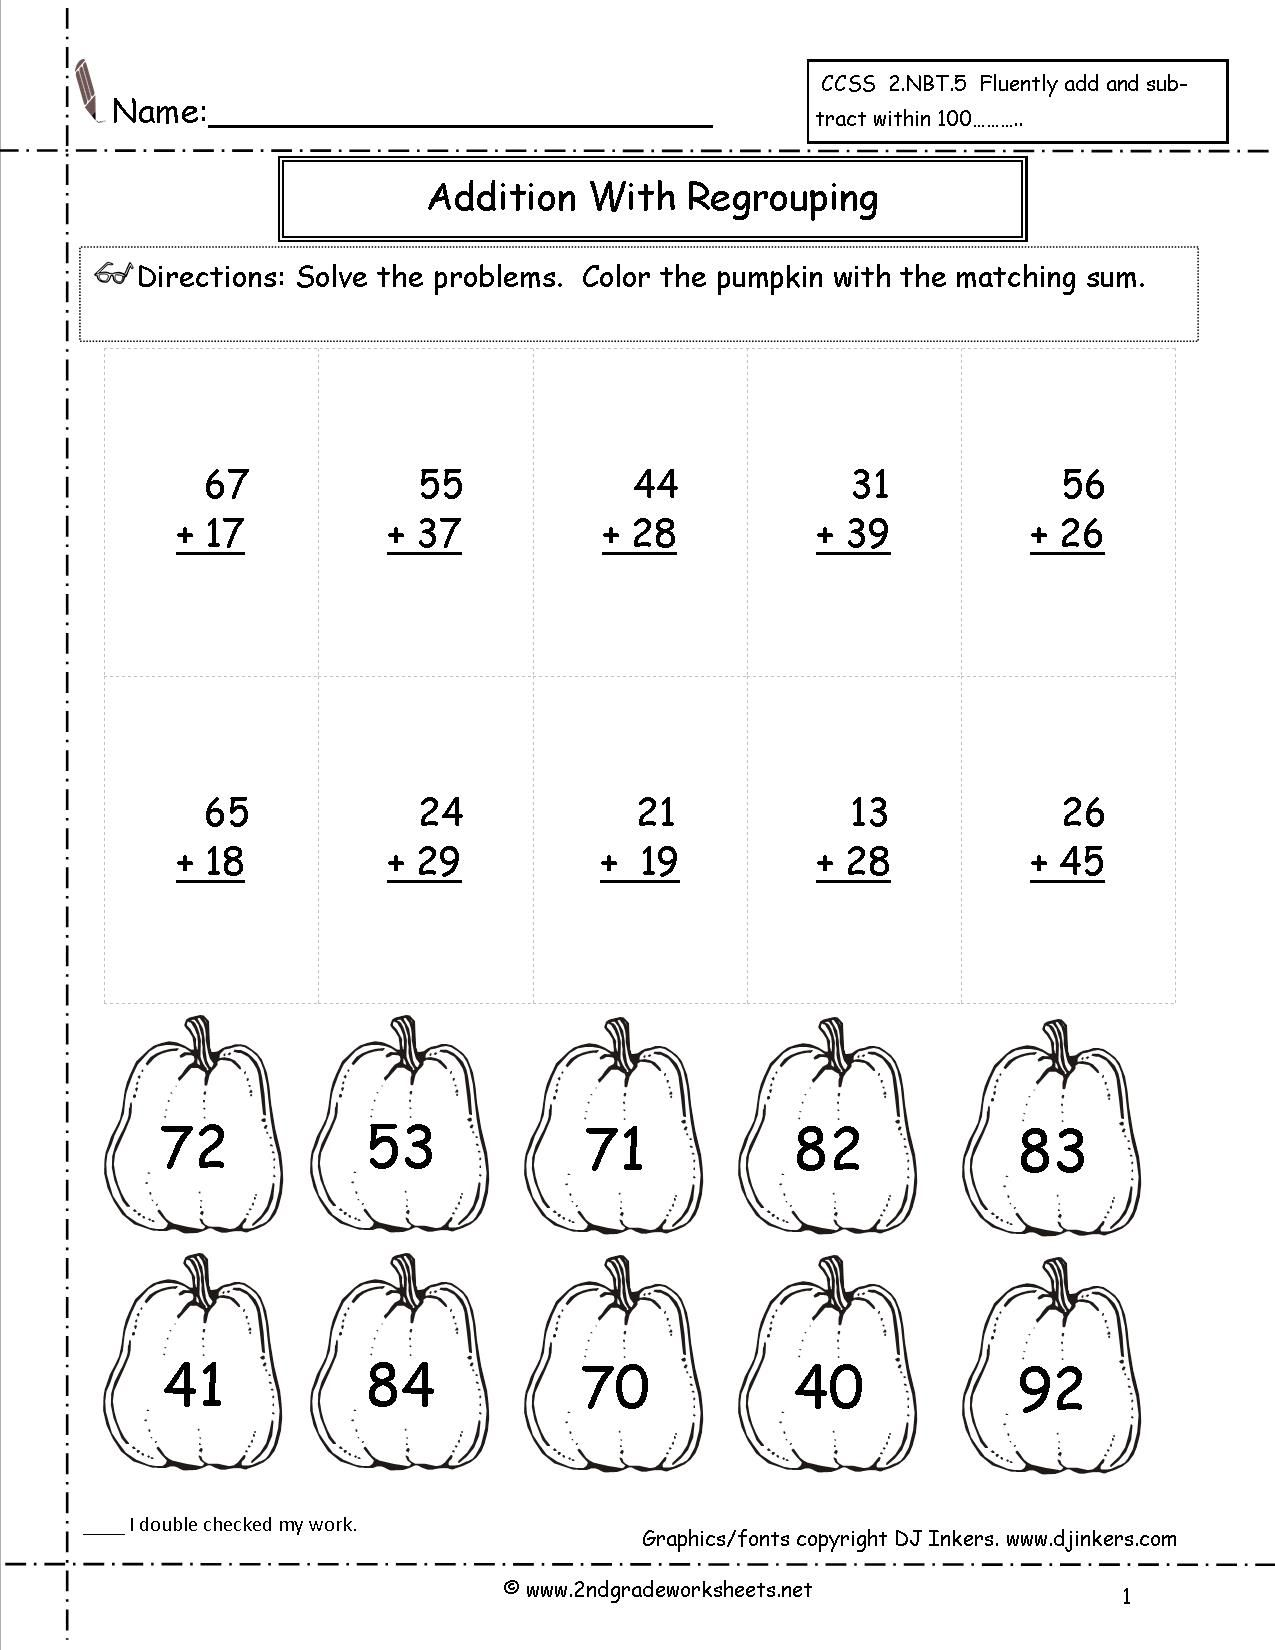 worksheet Math Regrouping two digit addition with regrouping ones to tens place worksheet double coloring worksheets students solve problems